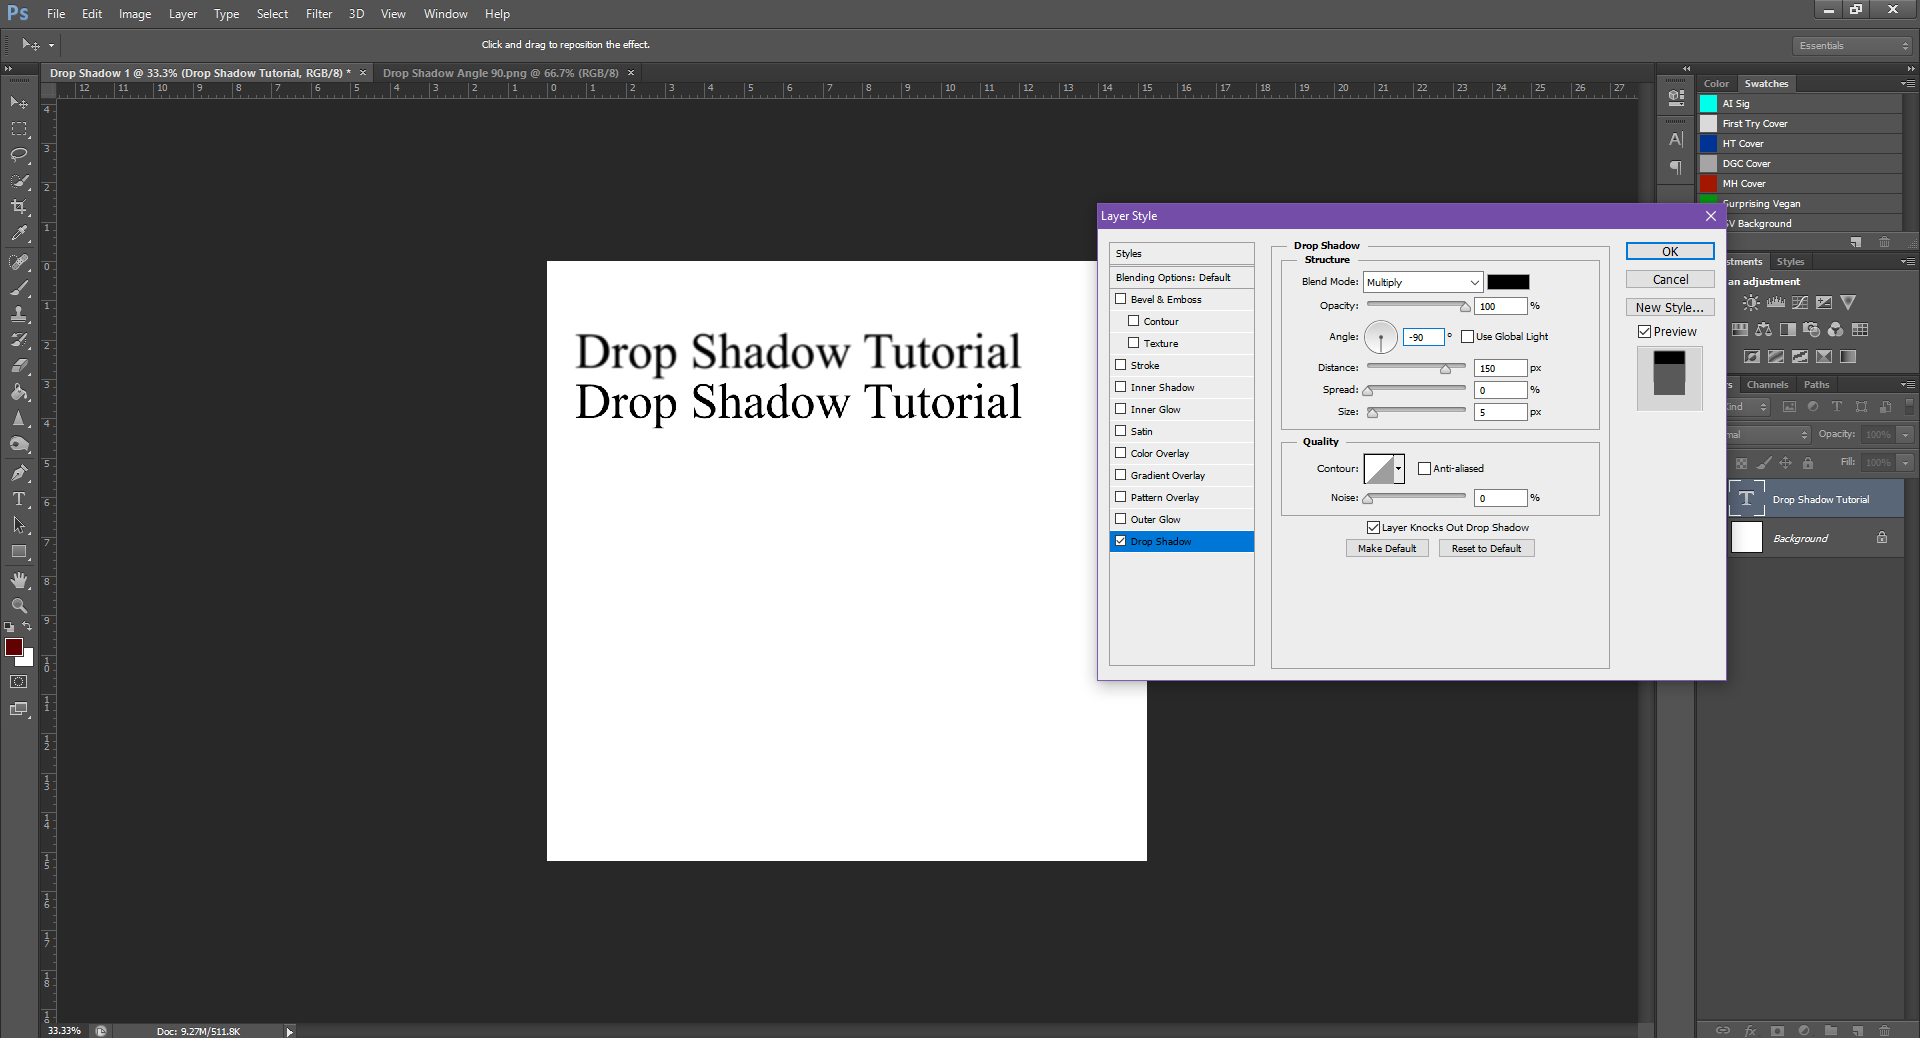 AterImber.com - Writing - Writing Tips - PHSH Tutorial - Drop Shadow - Angle -90